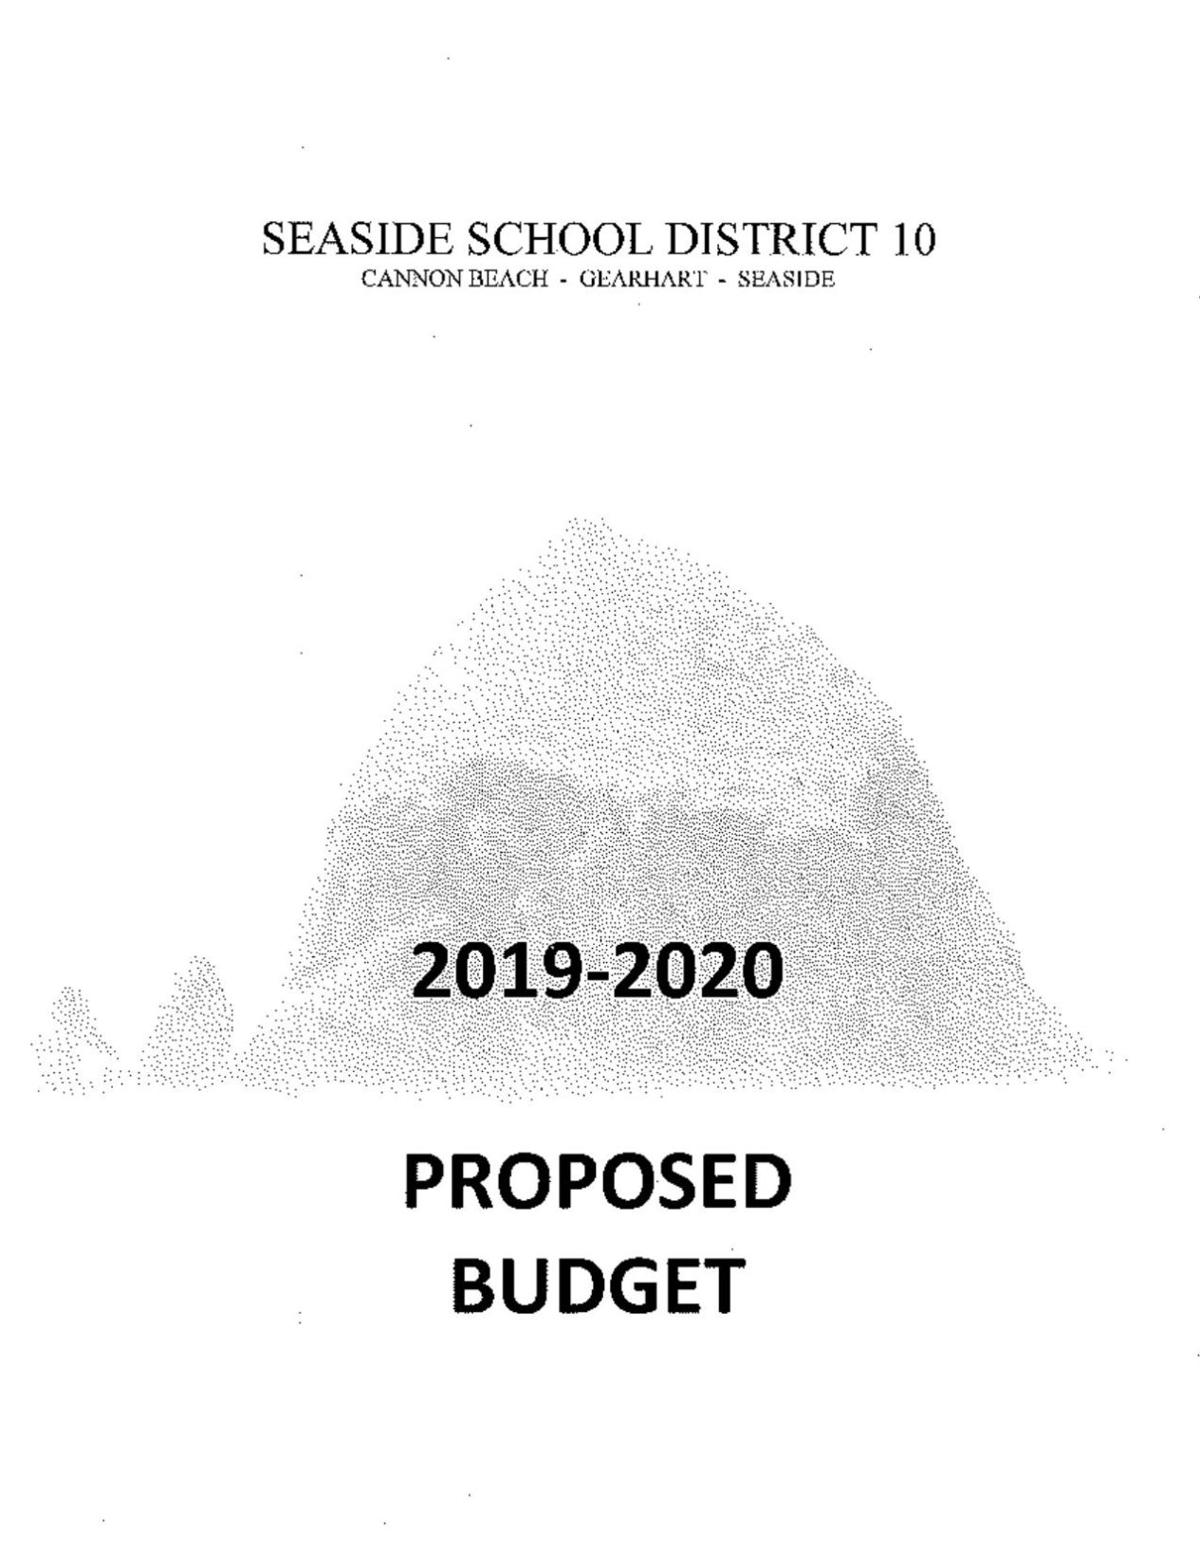 Seaside School District 2019-2020 proposed budget